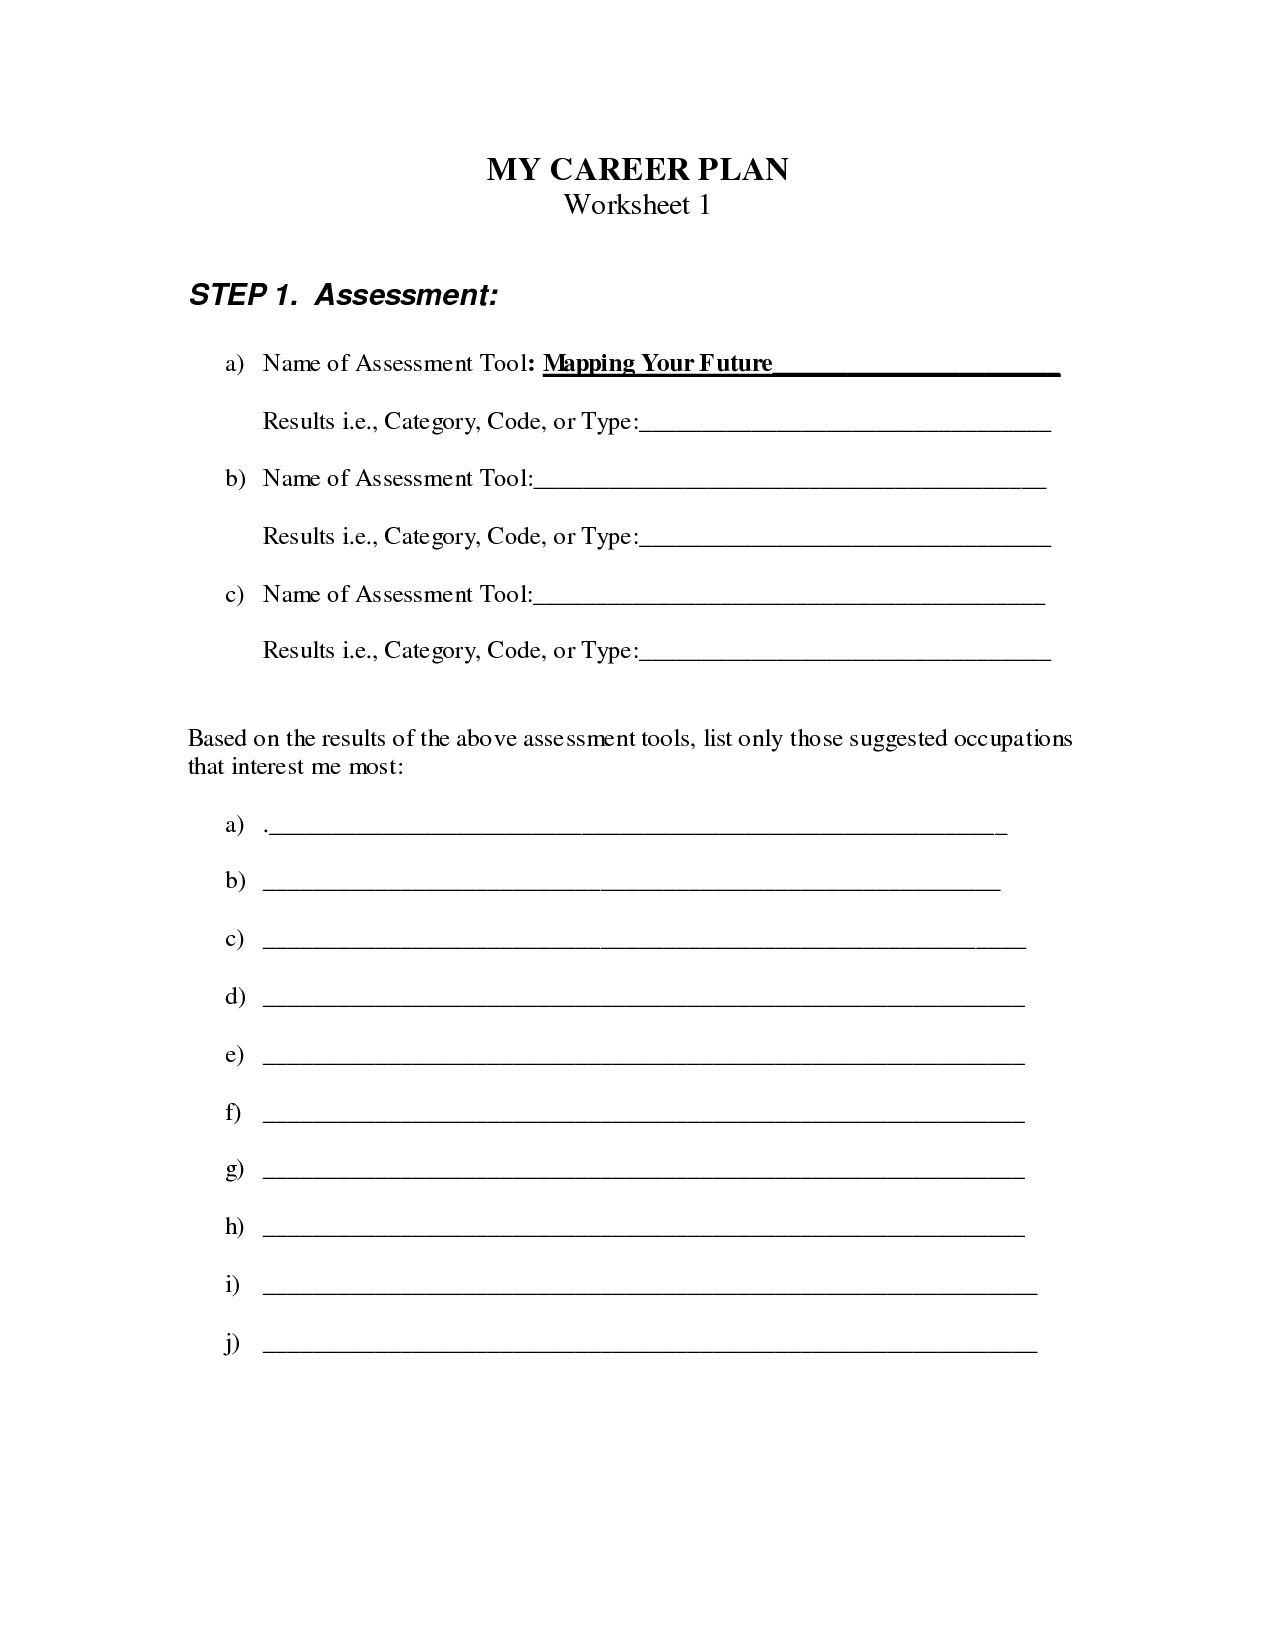 15 Best Images Of My Career Worksheet